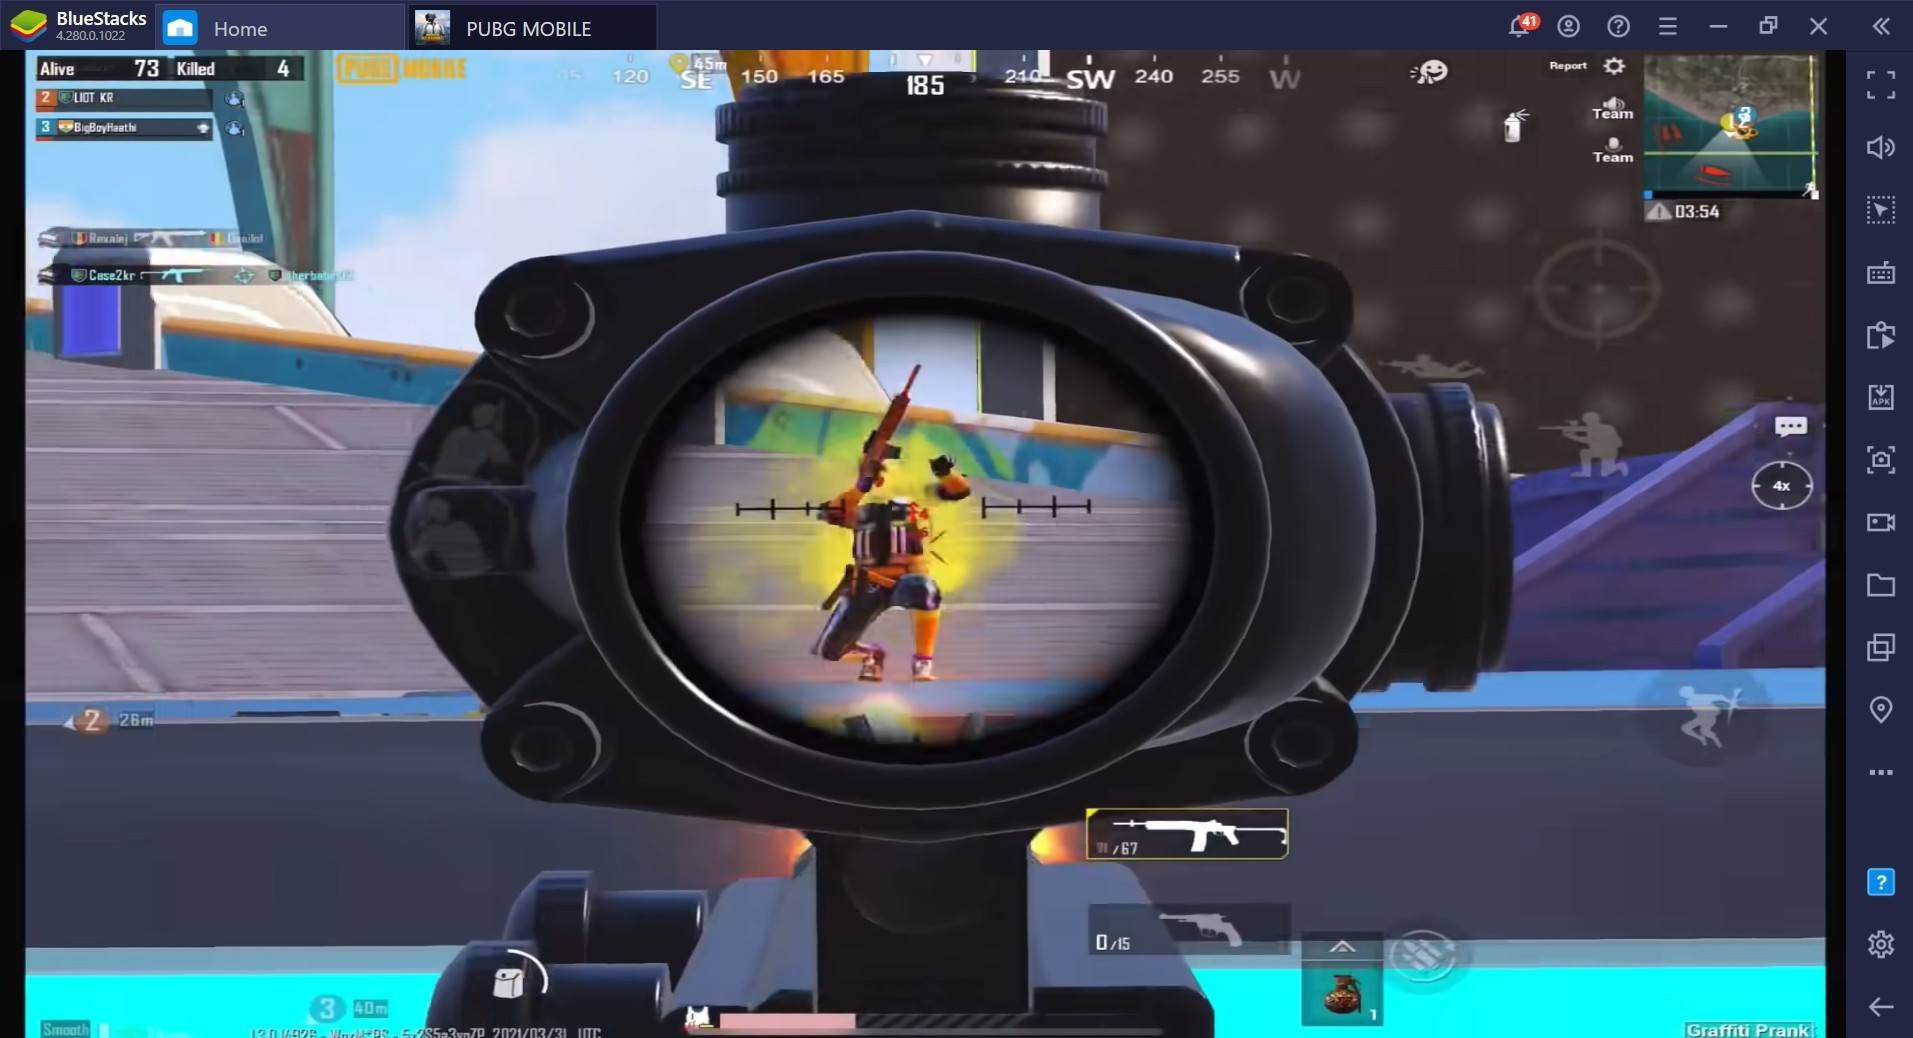 PUBG Mobile AKM Guide: Tips and Tricks to Make AK Do 47 Kills